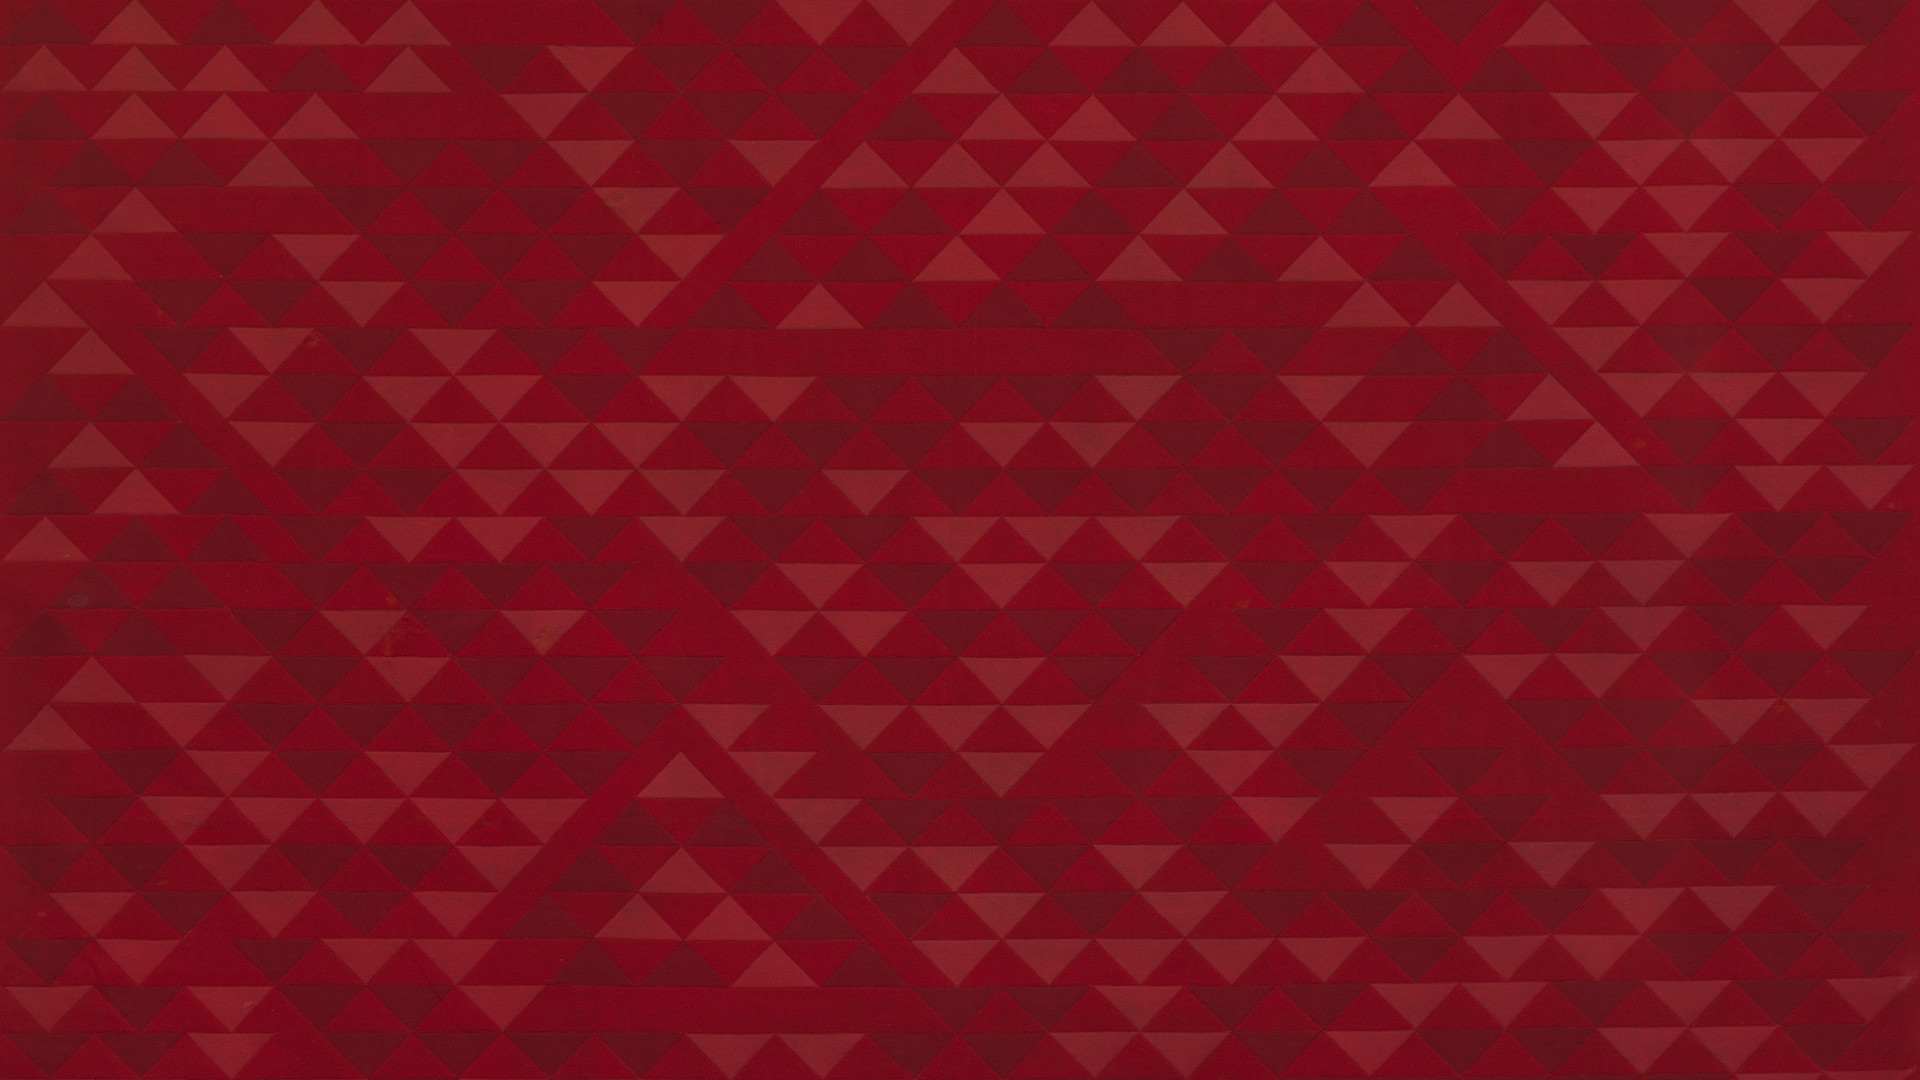 A detail of a textile by Anni Albers, titled Camino Real, dated 1968.